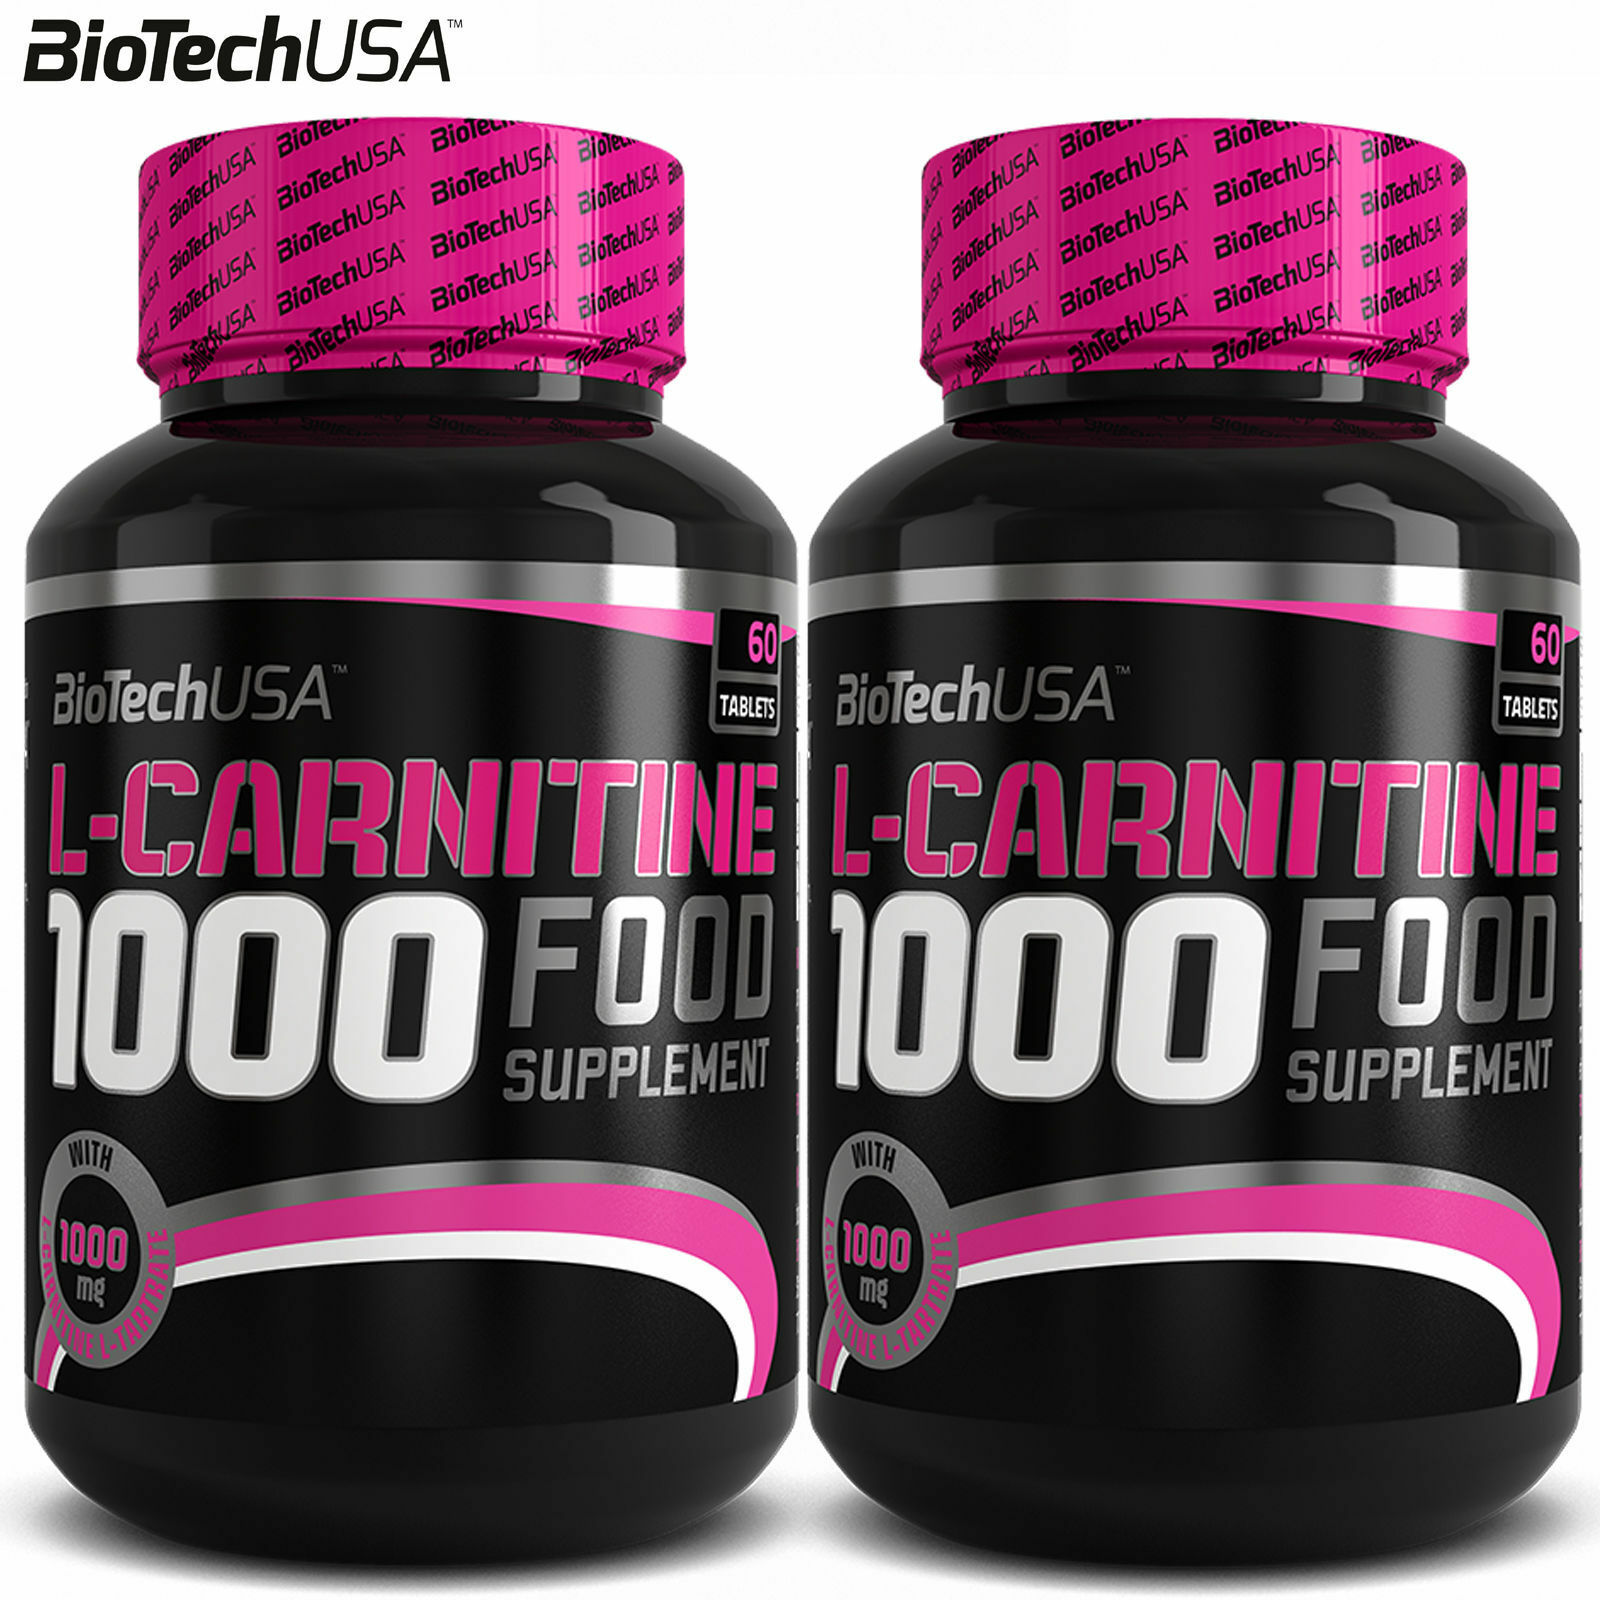 L-Carnitine 1000 60/120Tabl Fat Burner Slimming Weight Loss Management Reduction